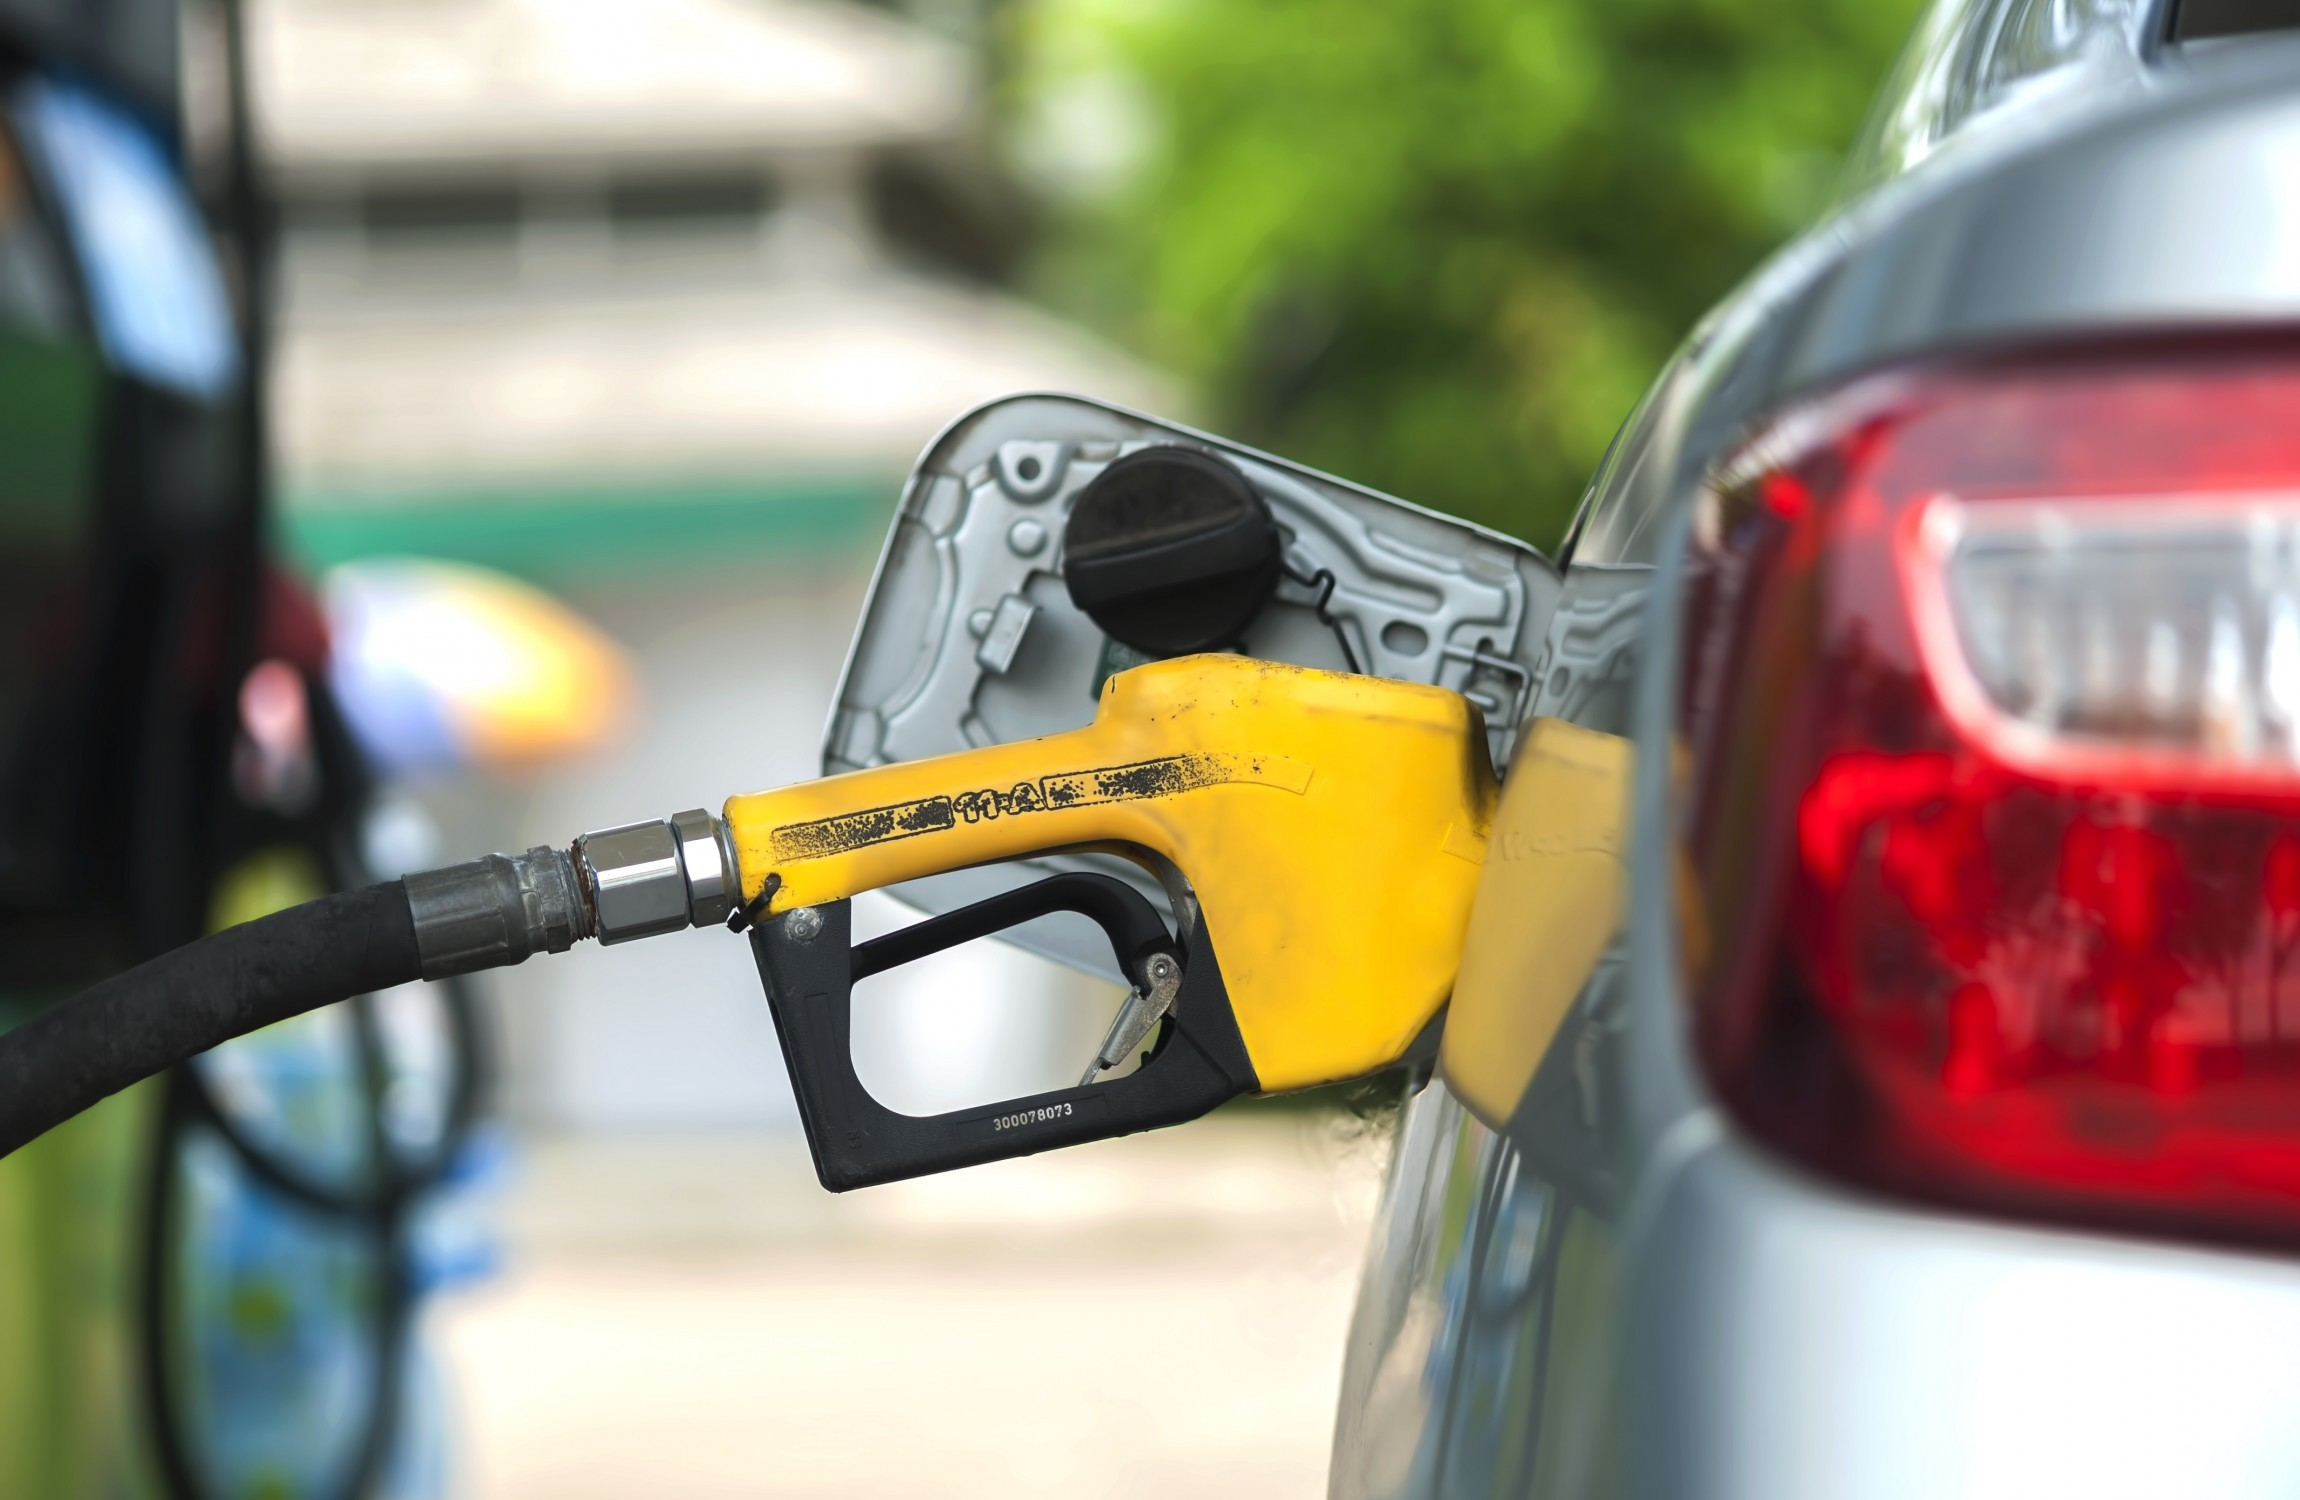 Bad Diesel Set Bad News For Irish Motorists As Petrol And Diesel Prices